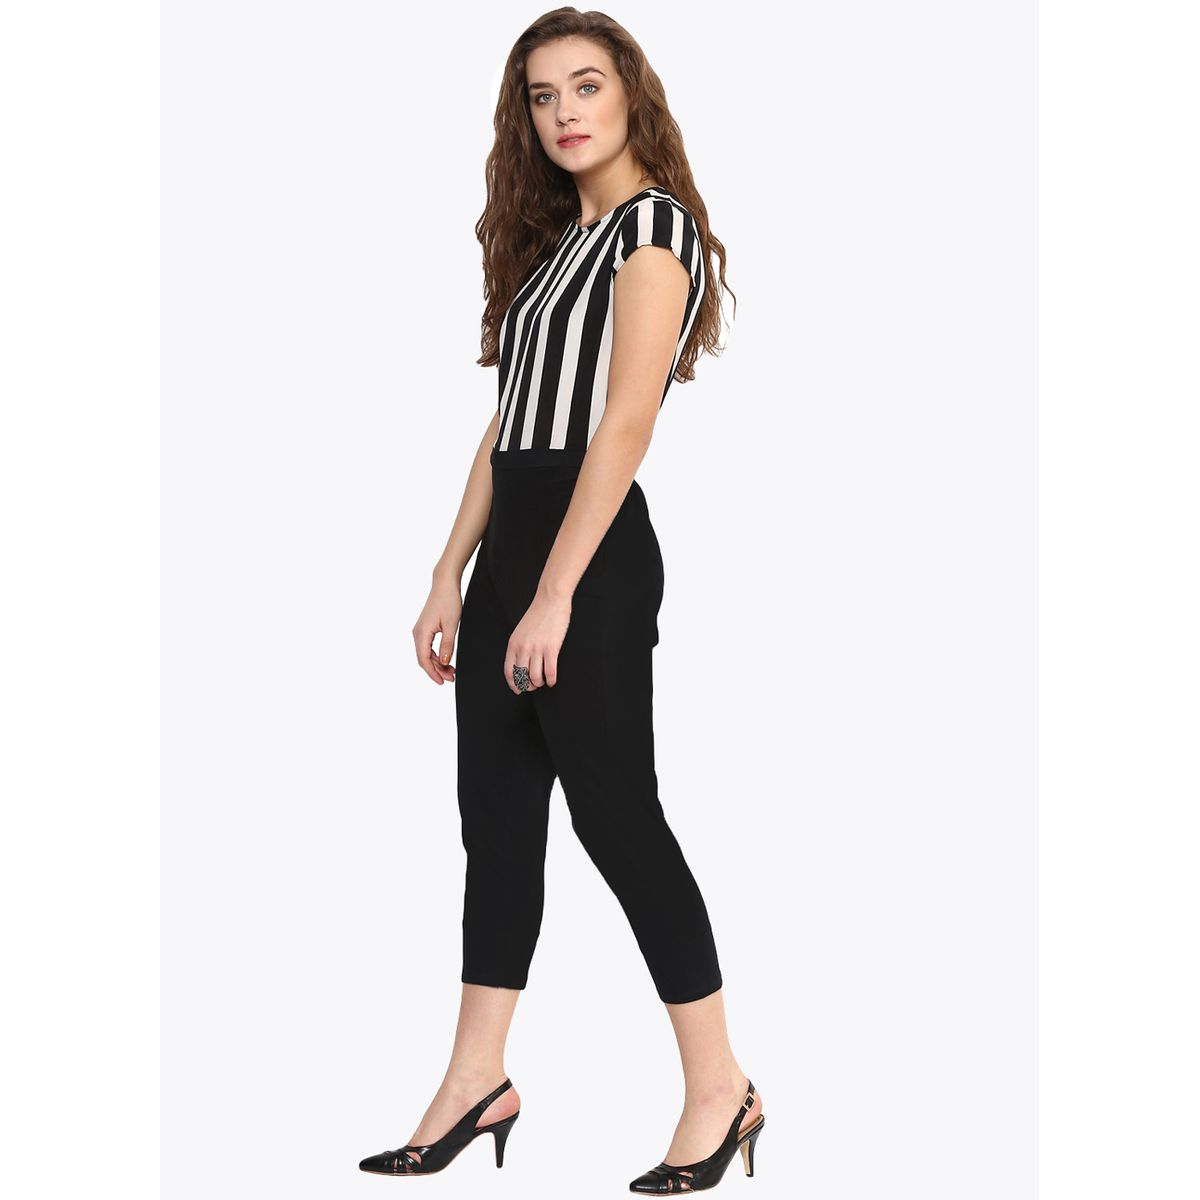 THE BEBO WHITE AND BLACK CREPE ELEGANT JUMPSUITS